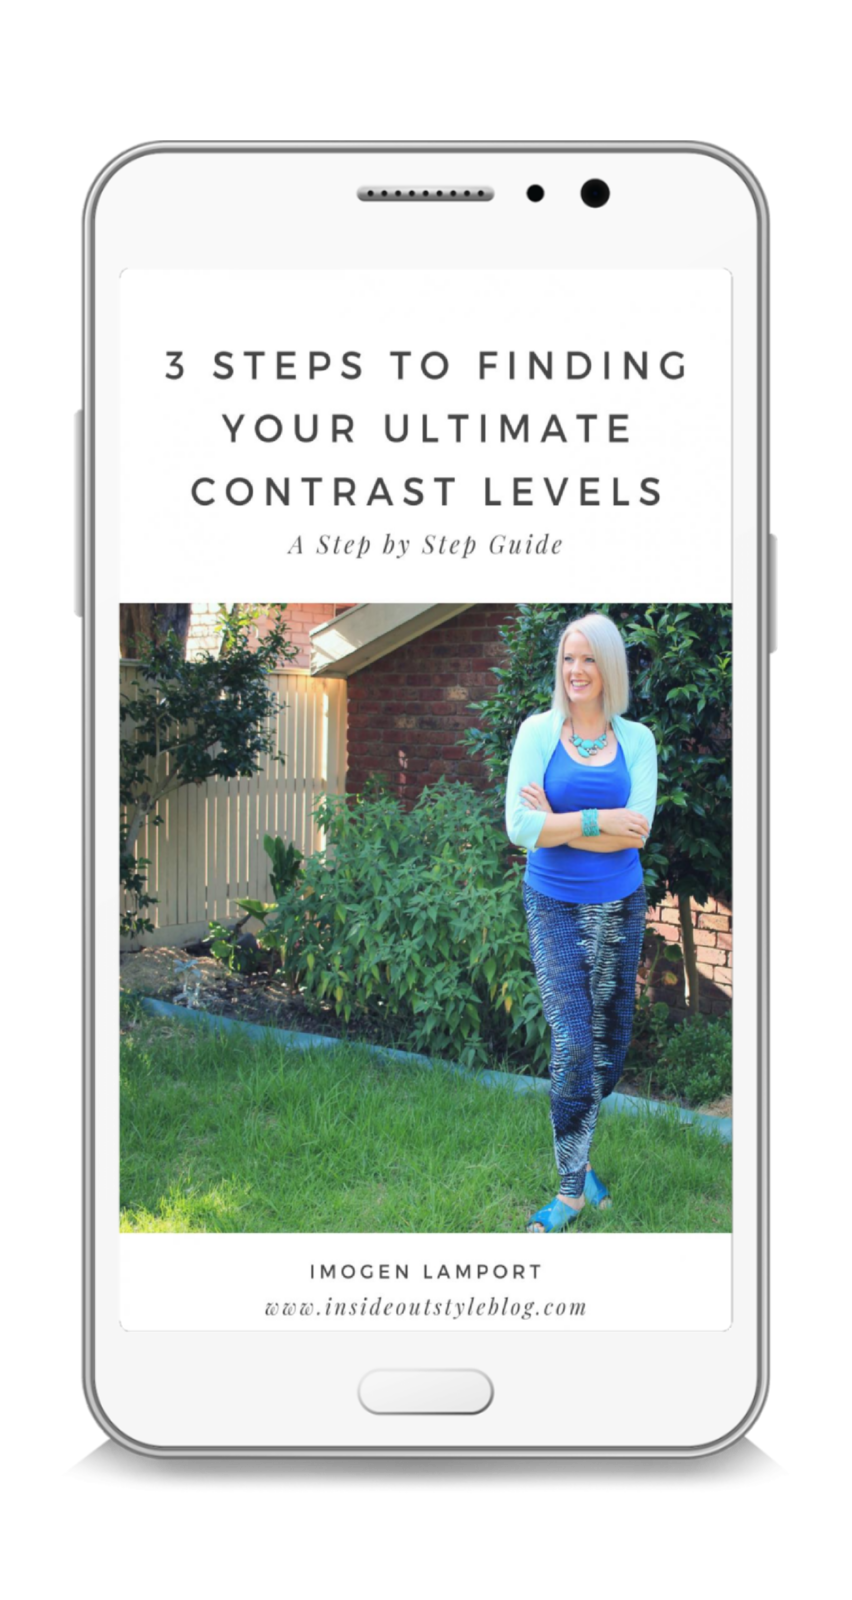 3 Steps to Finding Your Ultimate Contrast Levels Download